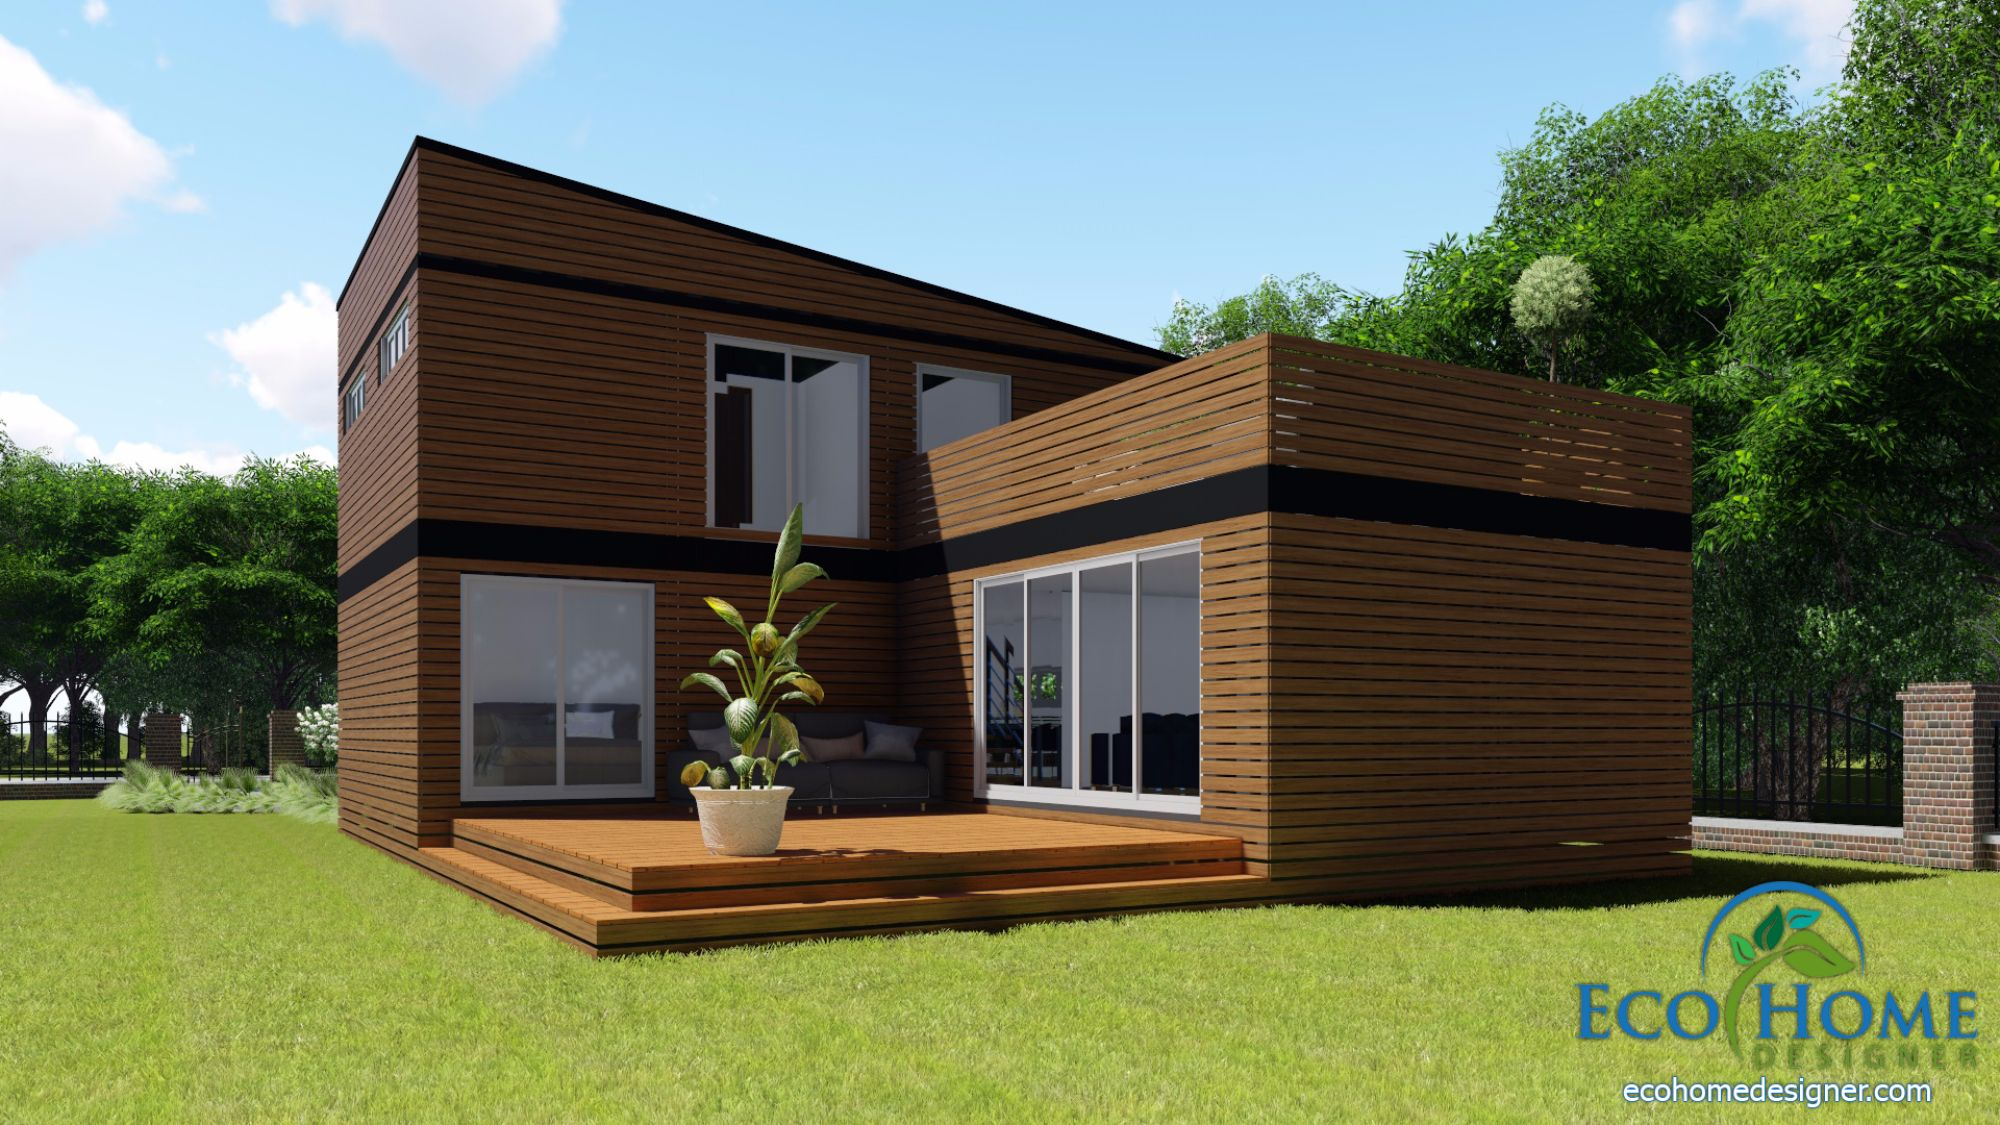 Sch17 10 x 20ft 2 story container home plans eco home for Container home plans for sale